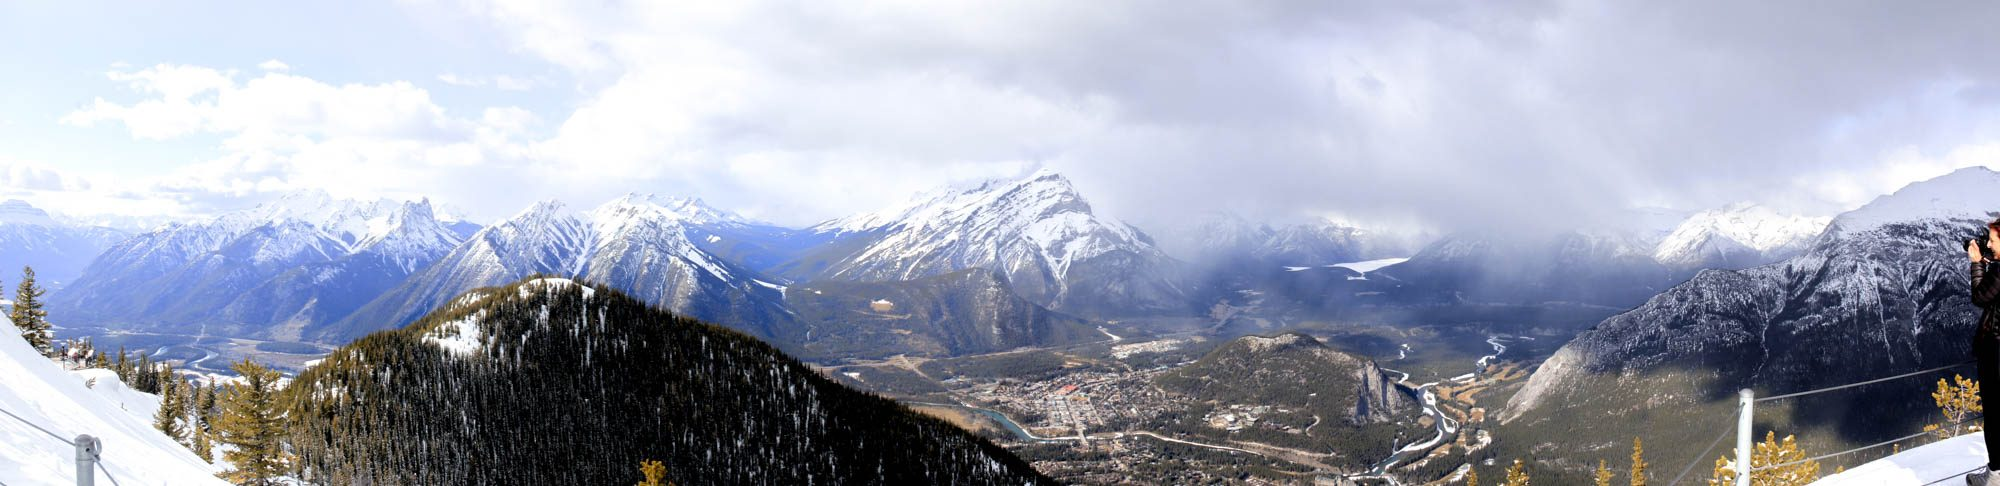 IMG_9180-Pano-Banff-Alberta-Photo